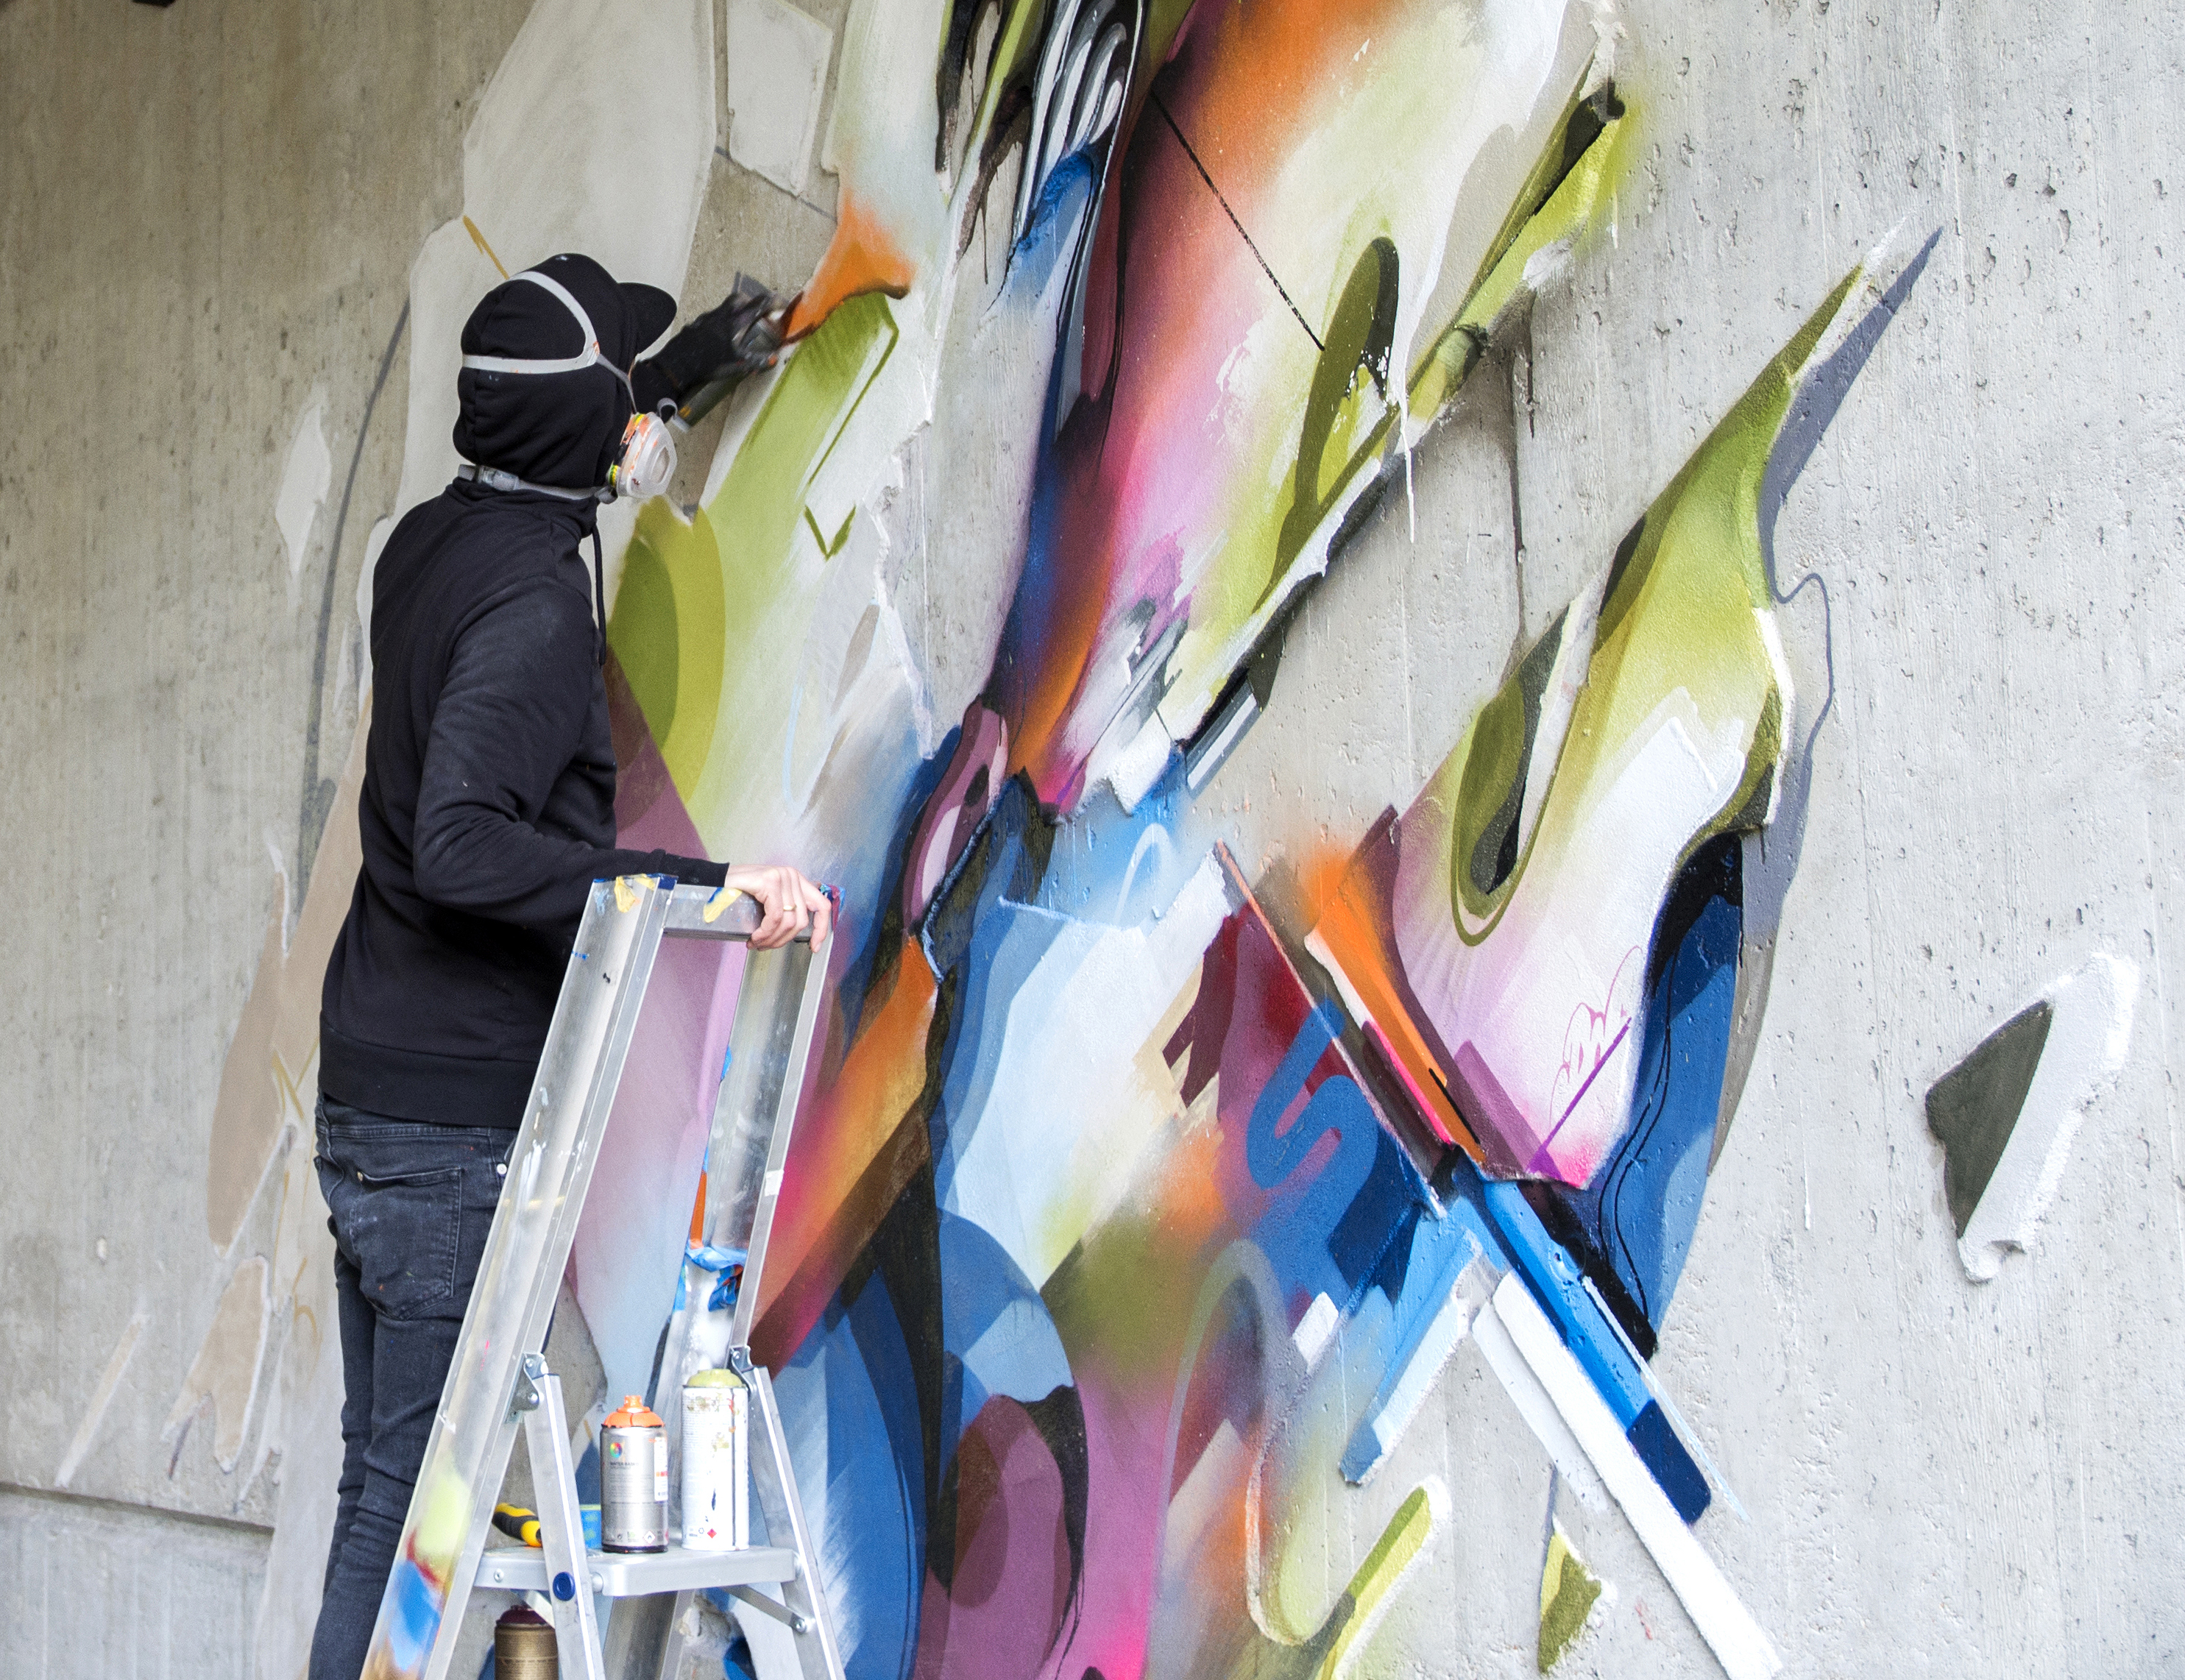 A work by Does - Mural lente detail heerlen the netherlands carbon 15